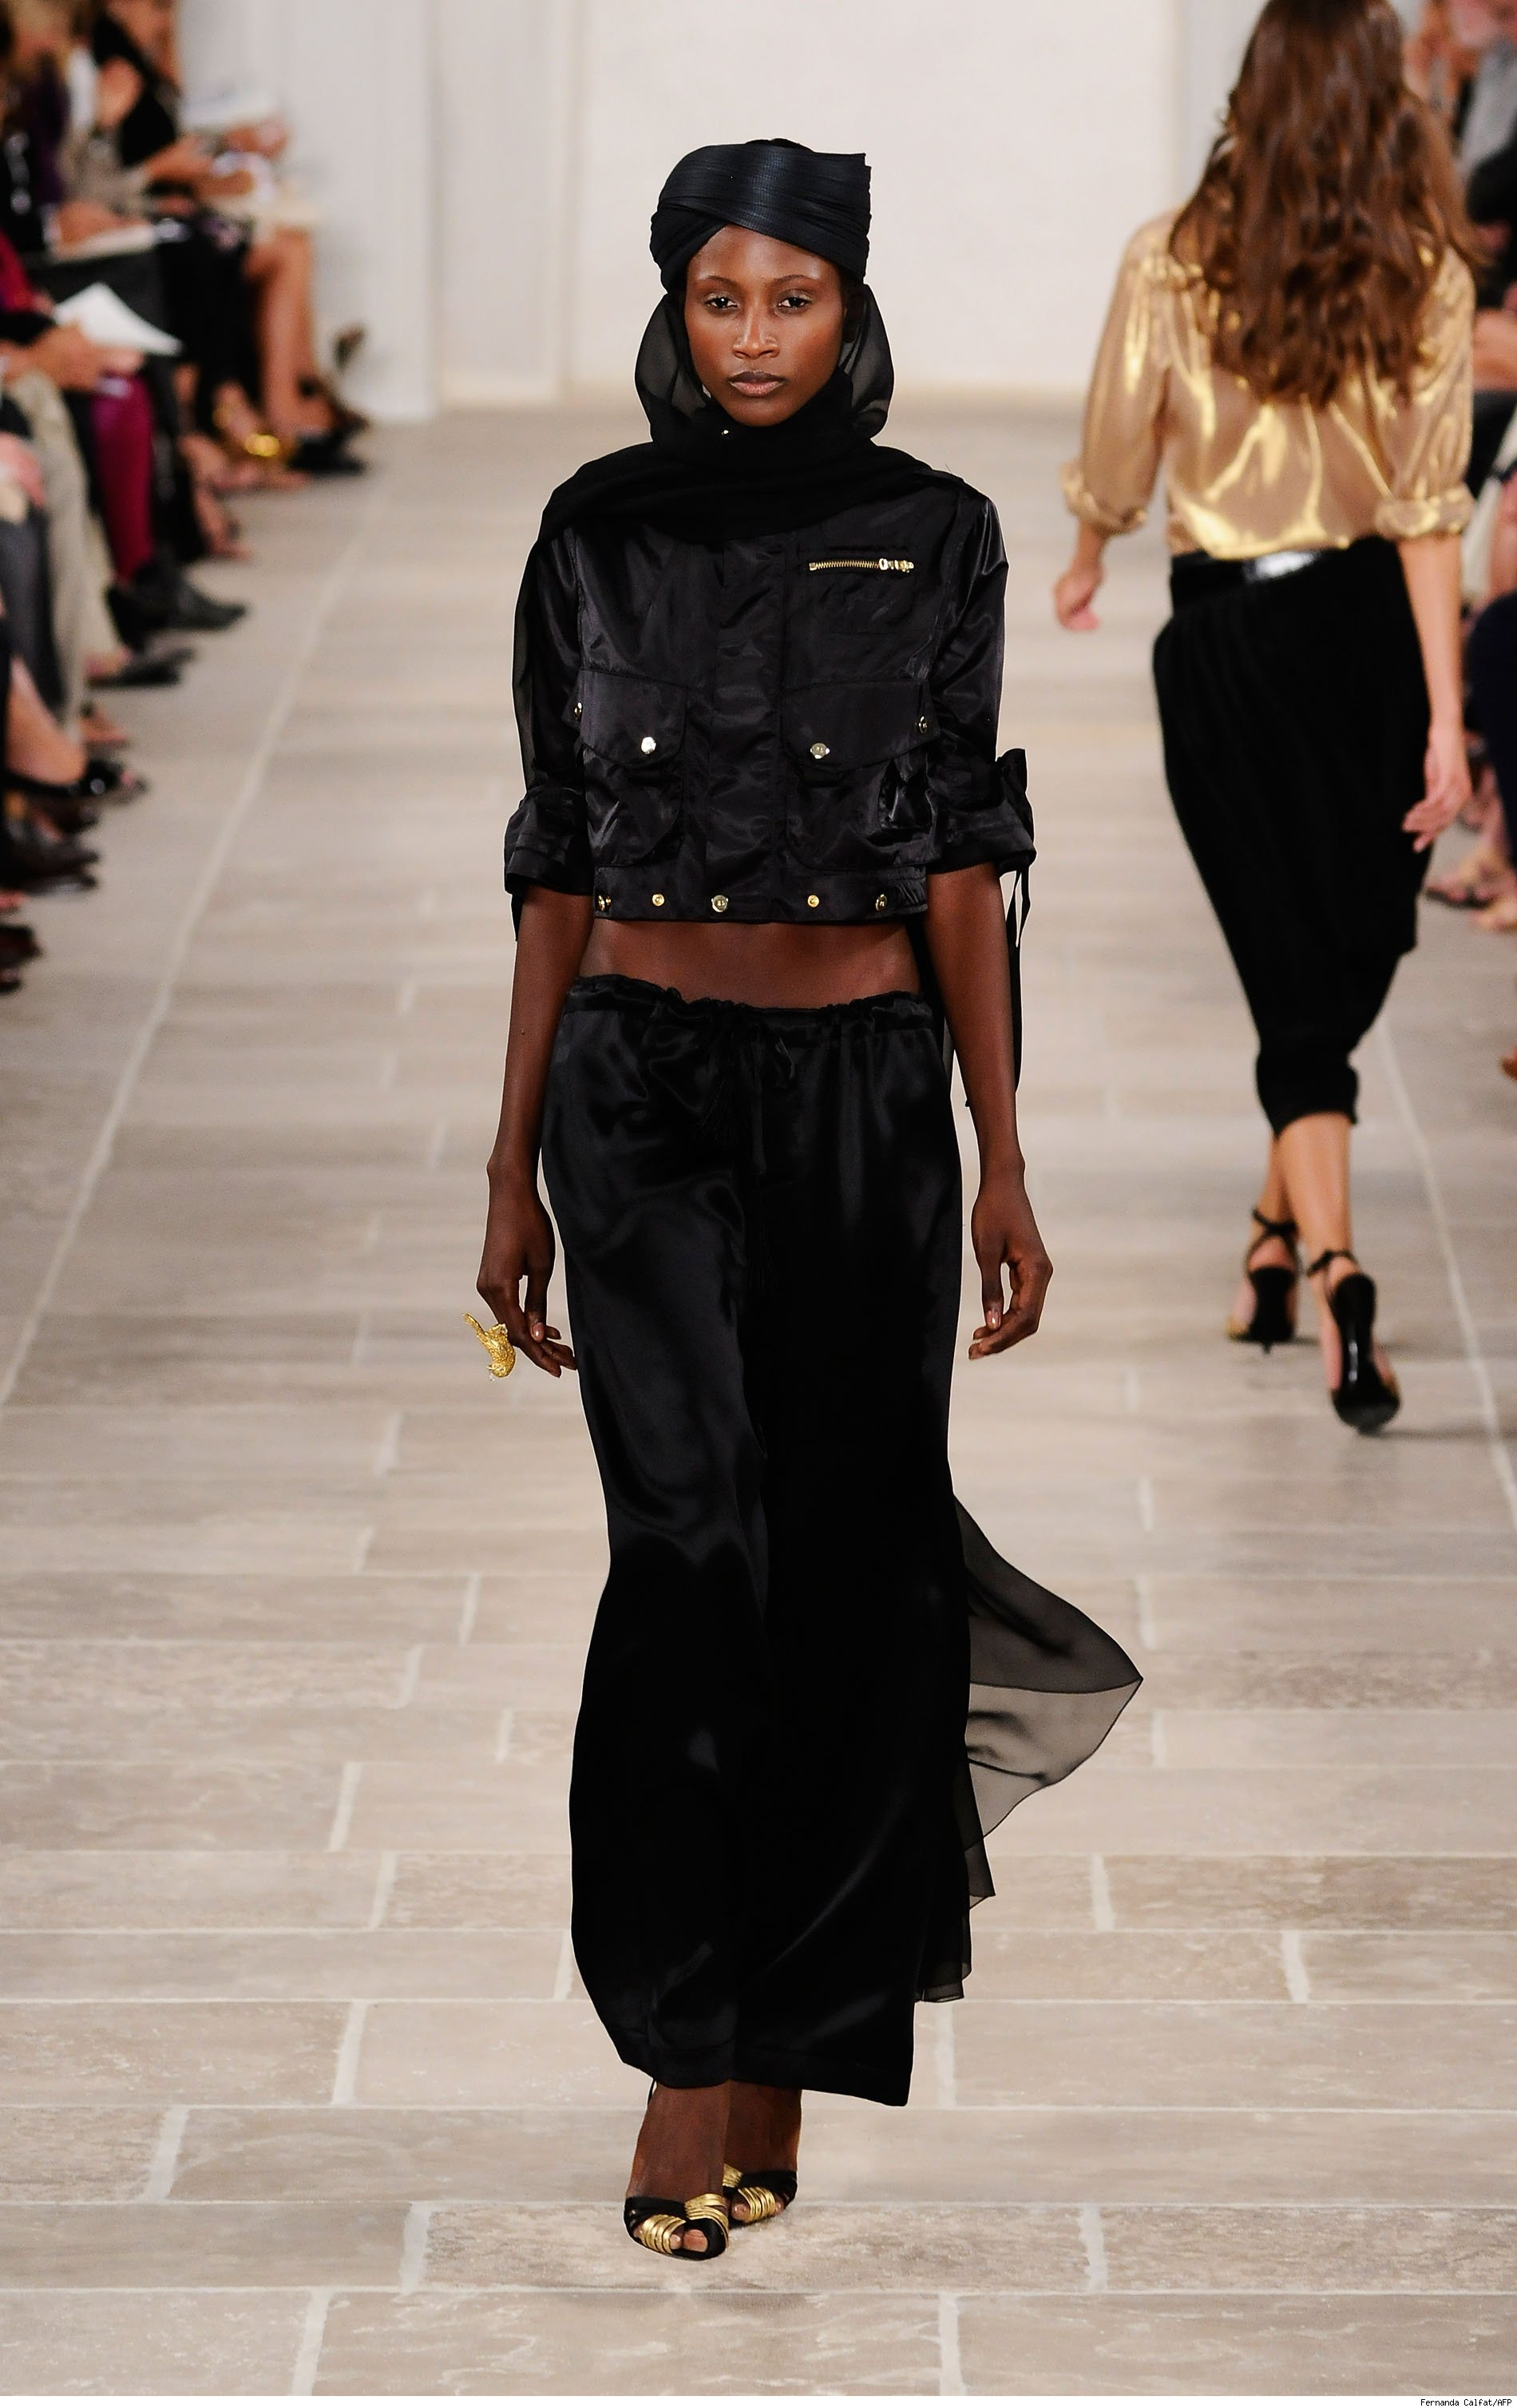 Ralph Lauren Runway Show